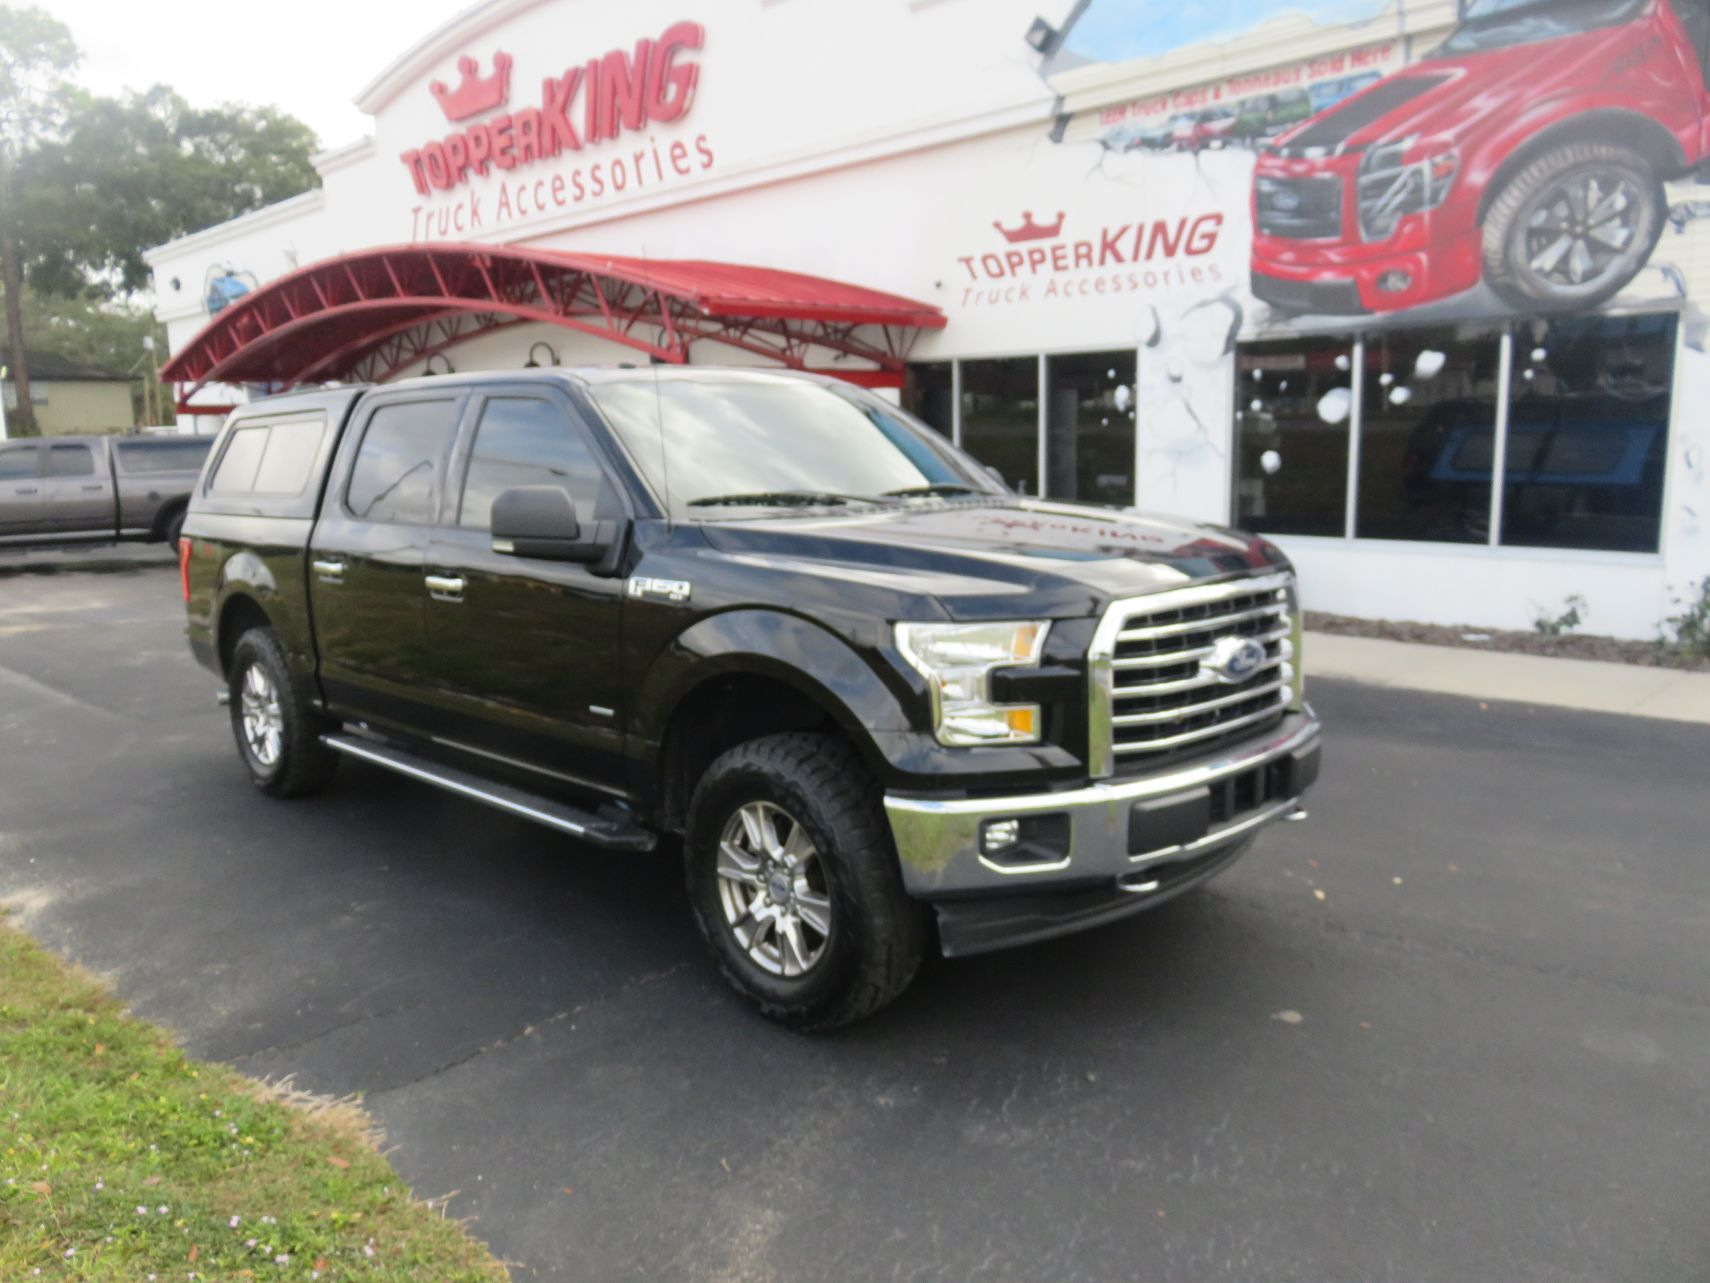 2019 Black Ford F150 with LEER 100XR, Nerf Bars, Tint, and Hitch by TopperKING in Brandon, FL 813-689-2449 or Clearwater, FL 727-530-9066. Call today!